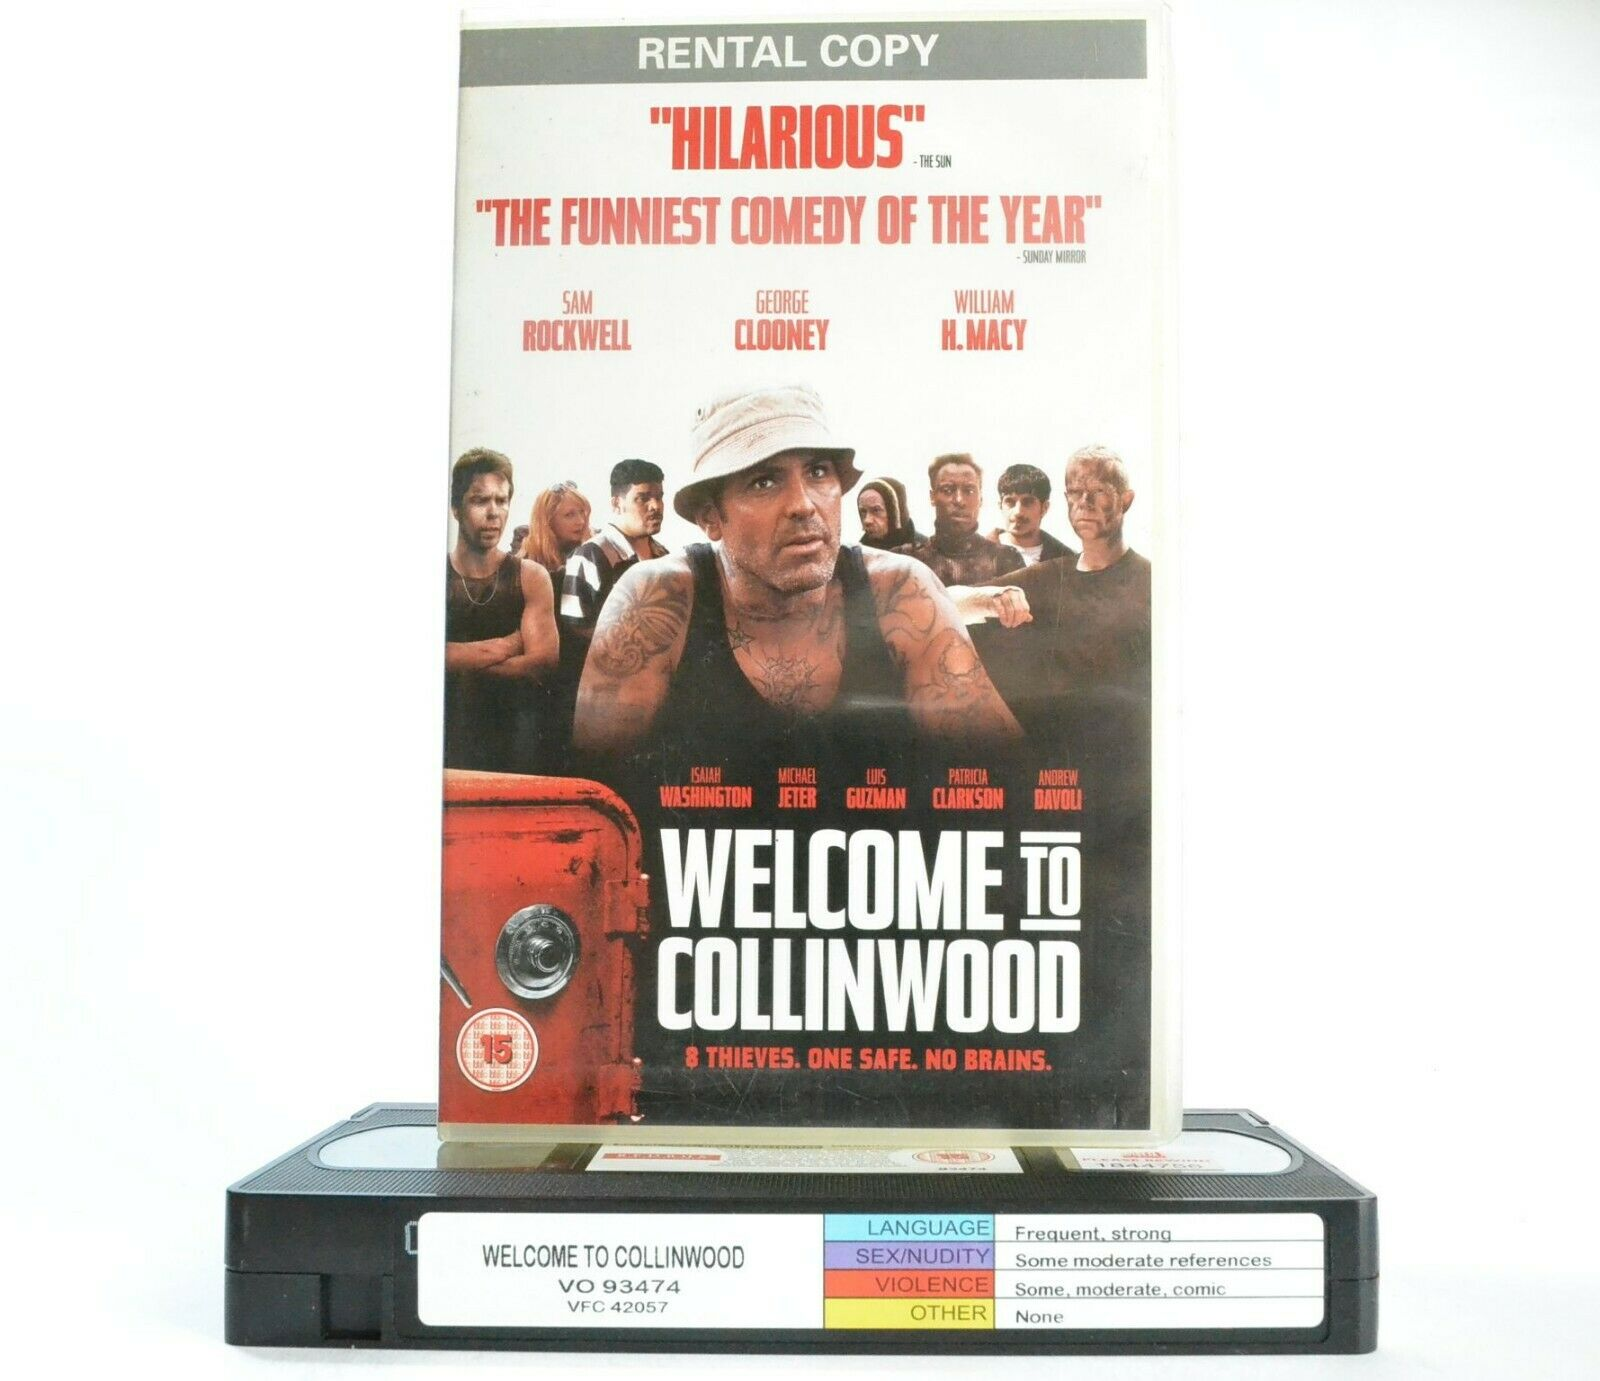 Welcome To Collinwood (2002) - Caper Comedy - Large Box - George Clooney - VHS